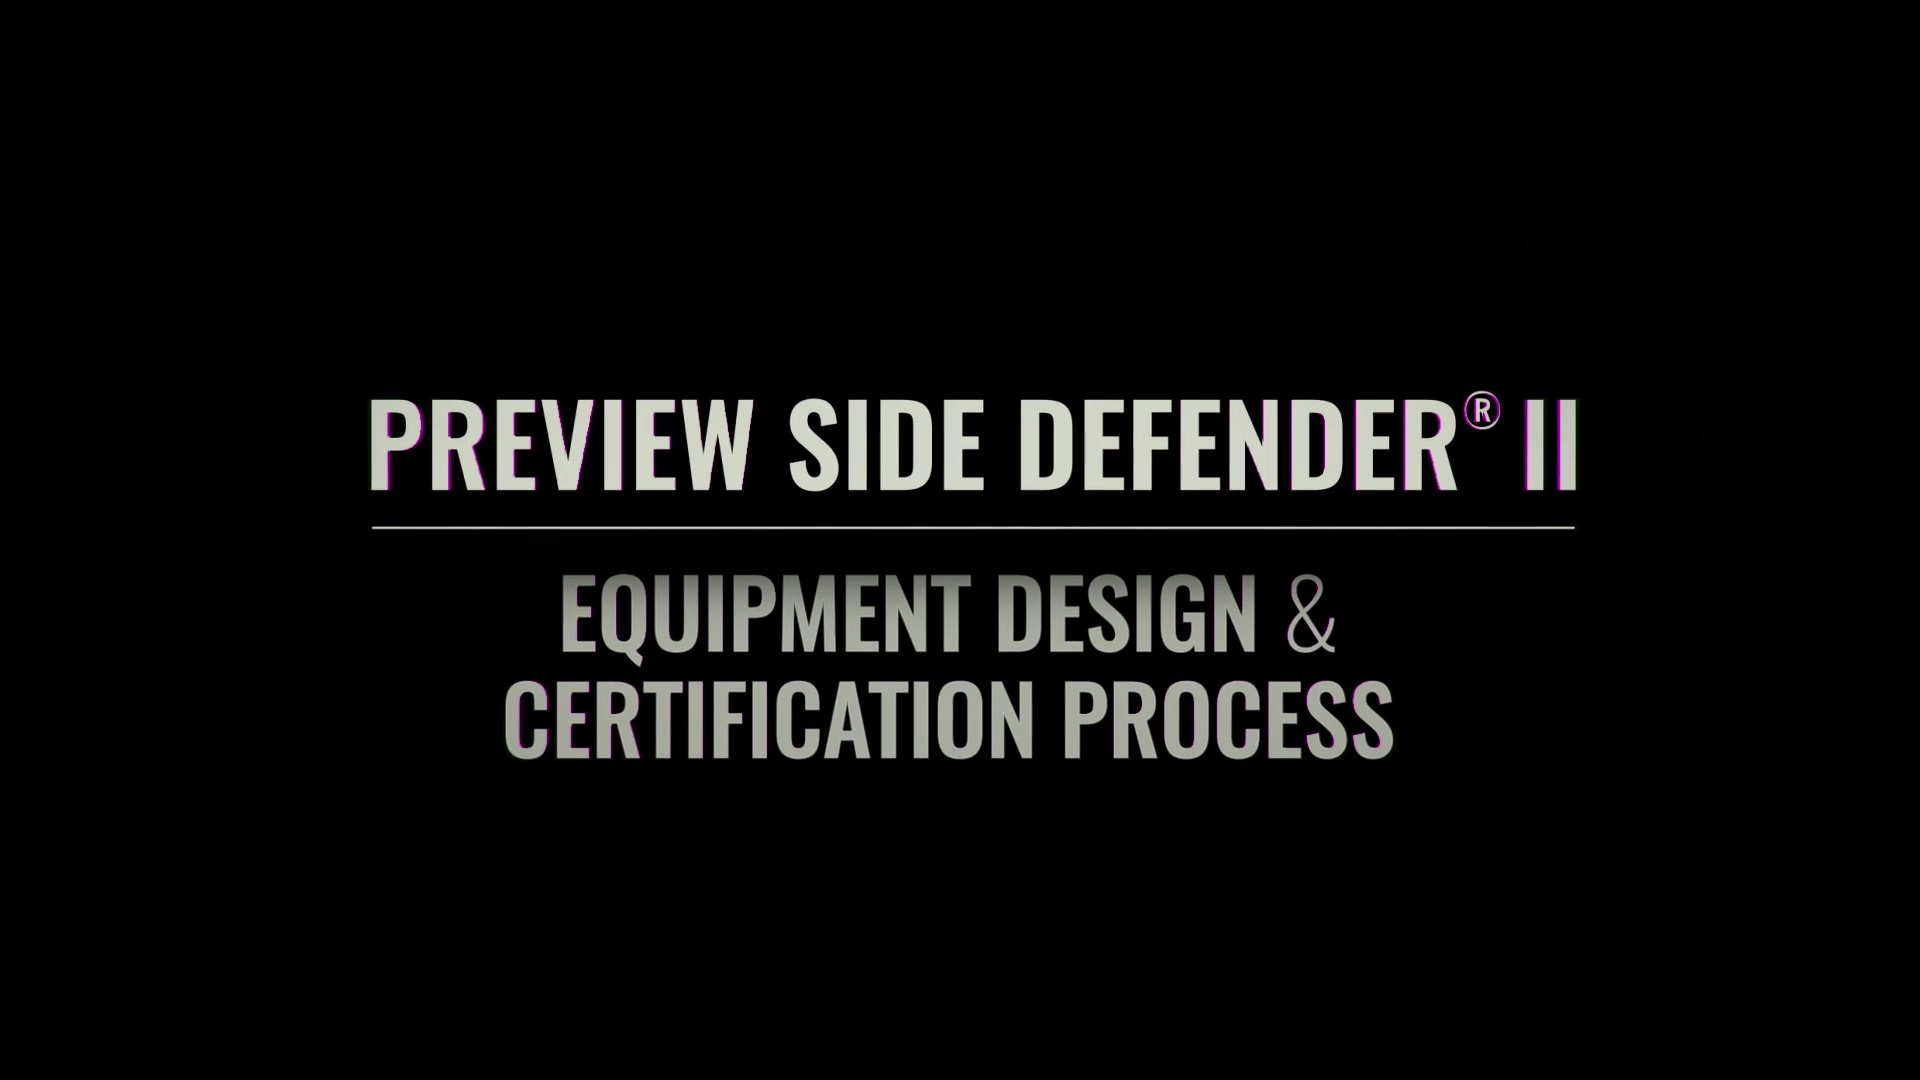 PreView Side Defender II Testing and Certification